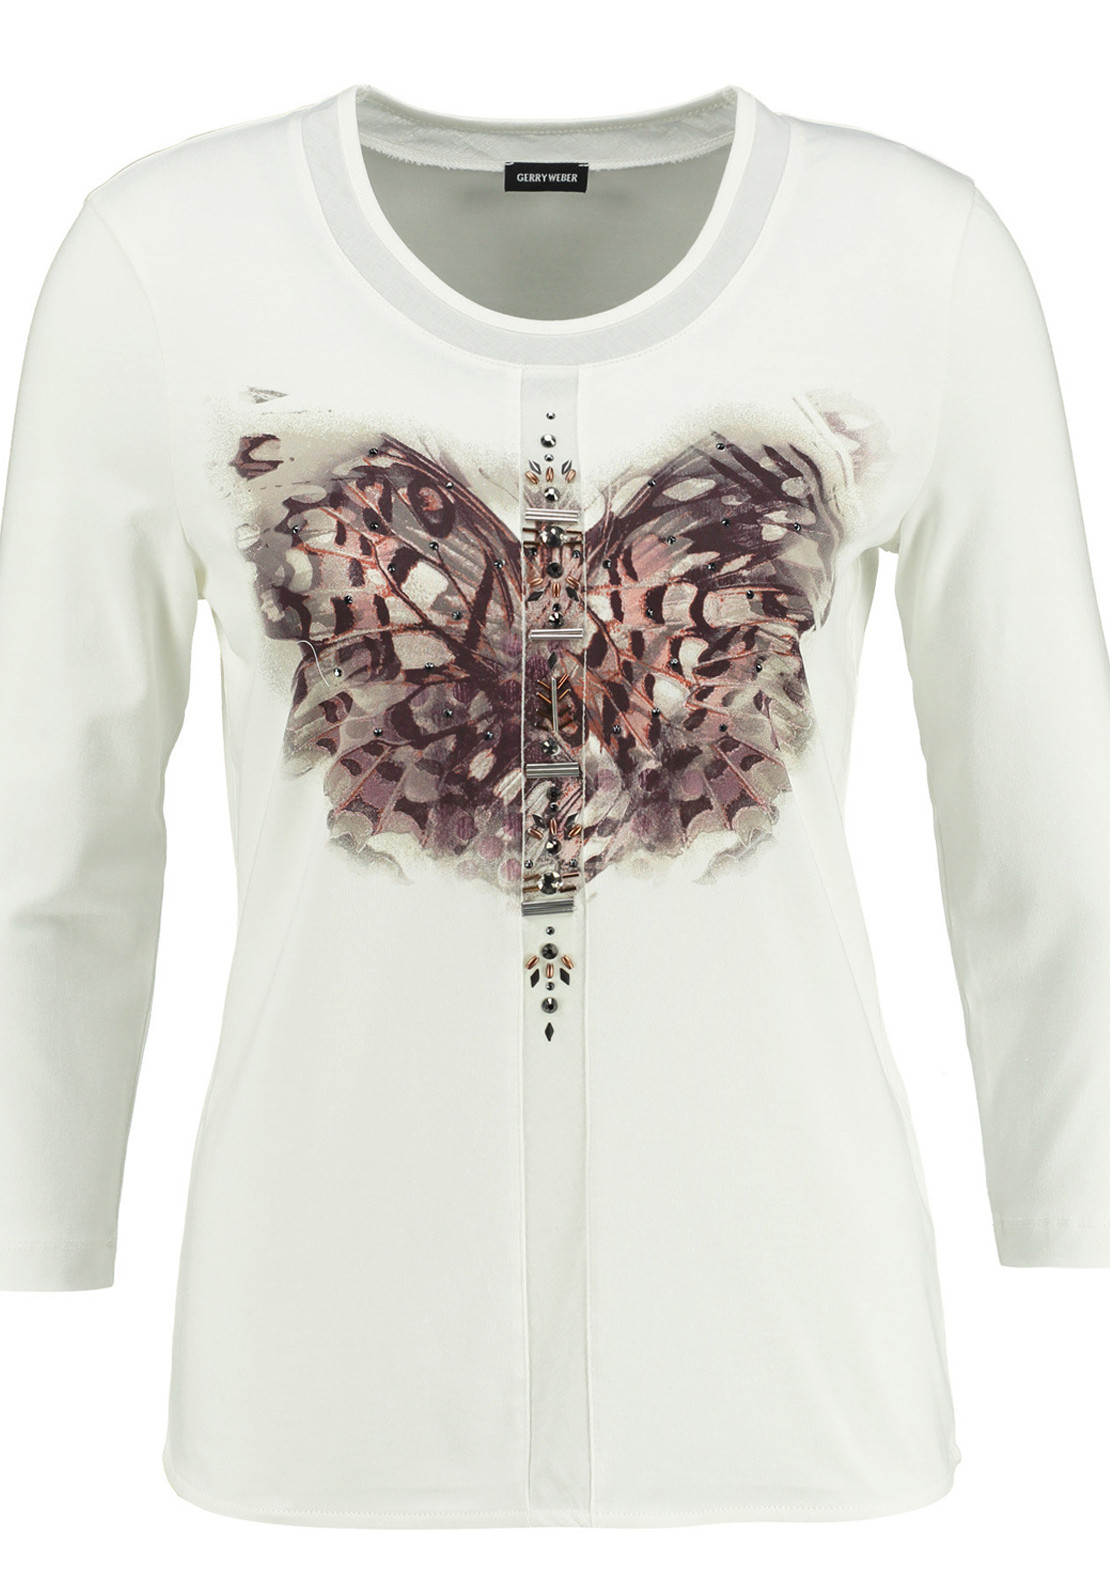 Gerry Weber Embellished Butterfly Print T-Shirt, Ivory